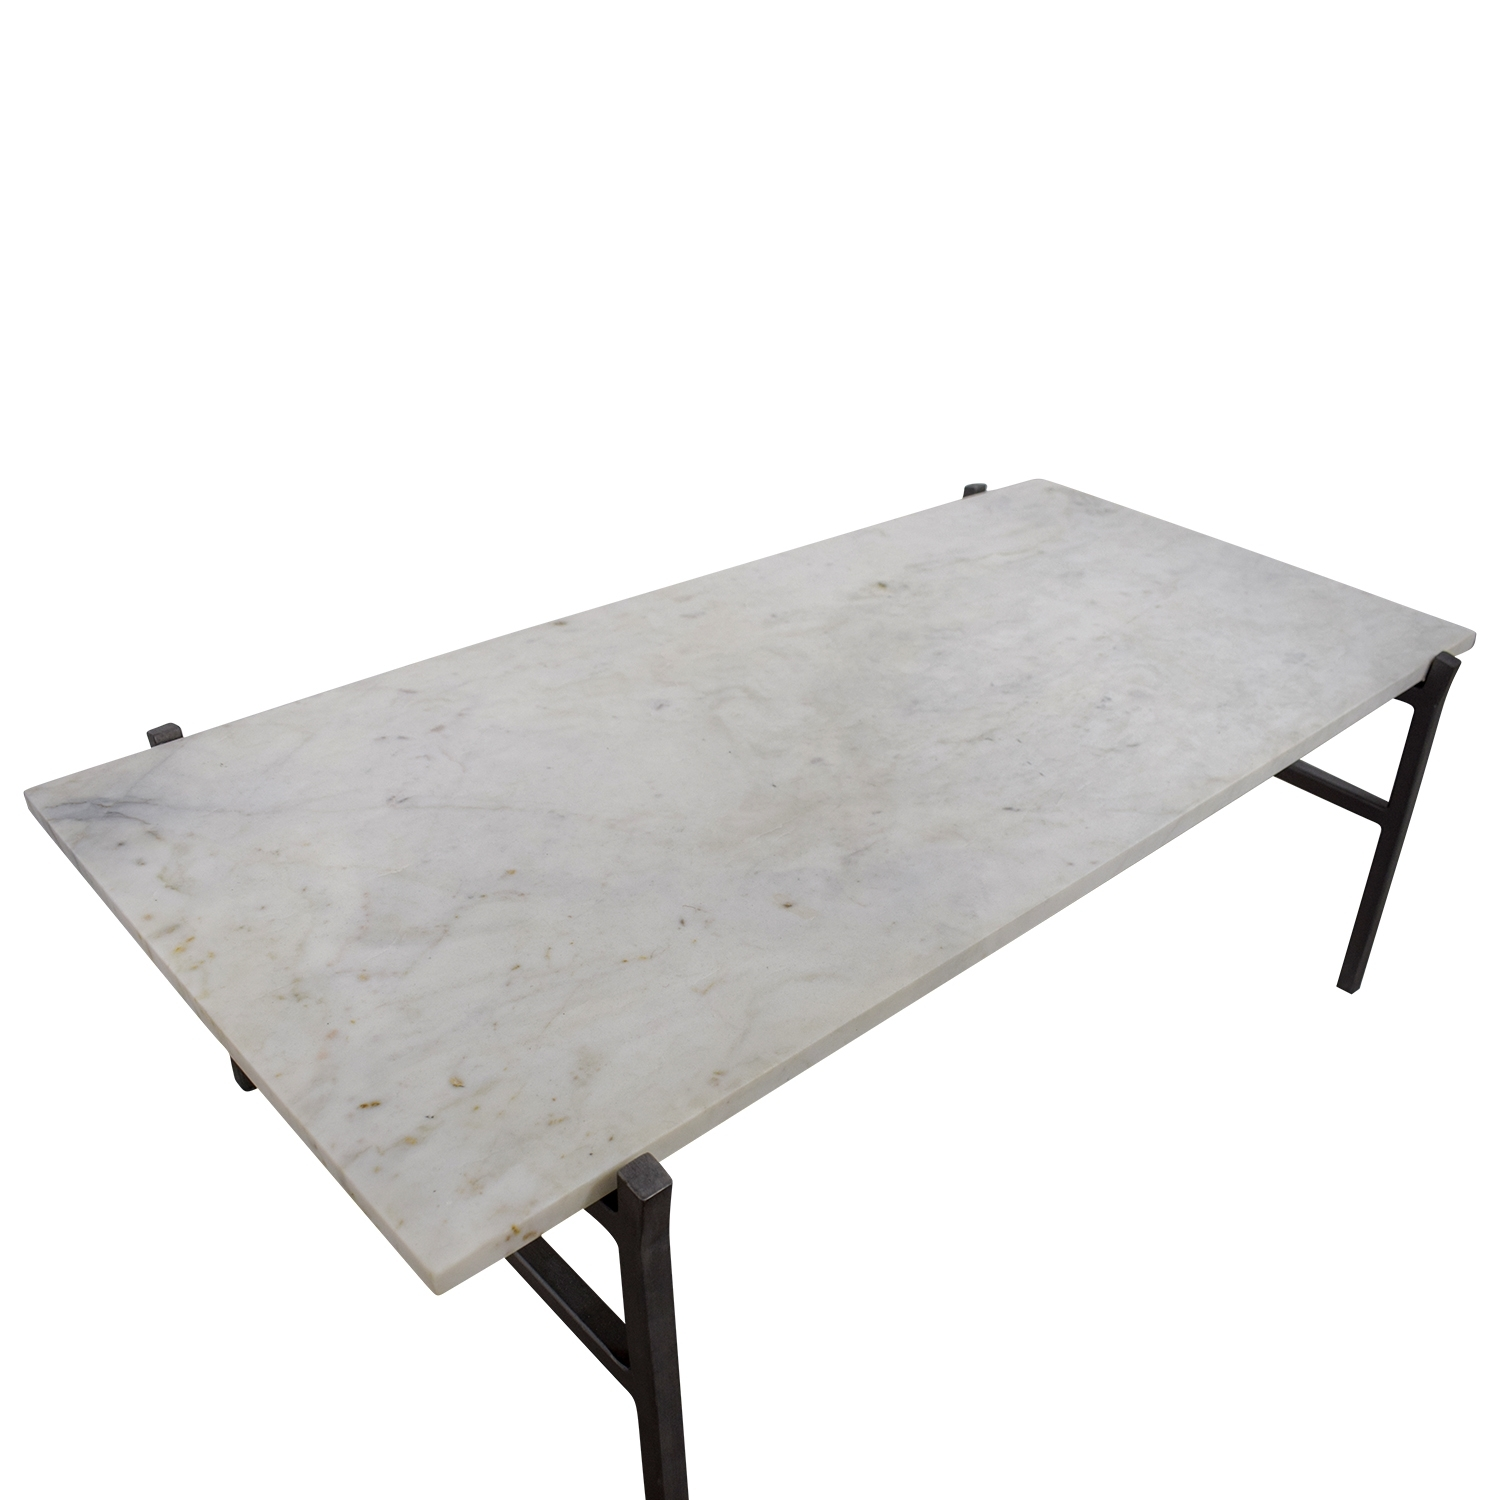 24% Off - Cb2 Cb2 Slab Small Marble Coffee Table With Antiqued within Slab Small Marble Coffee Tables With Antiqued Silver Base (Image 7 of 30)